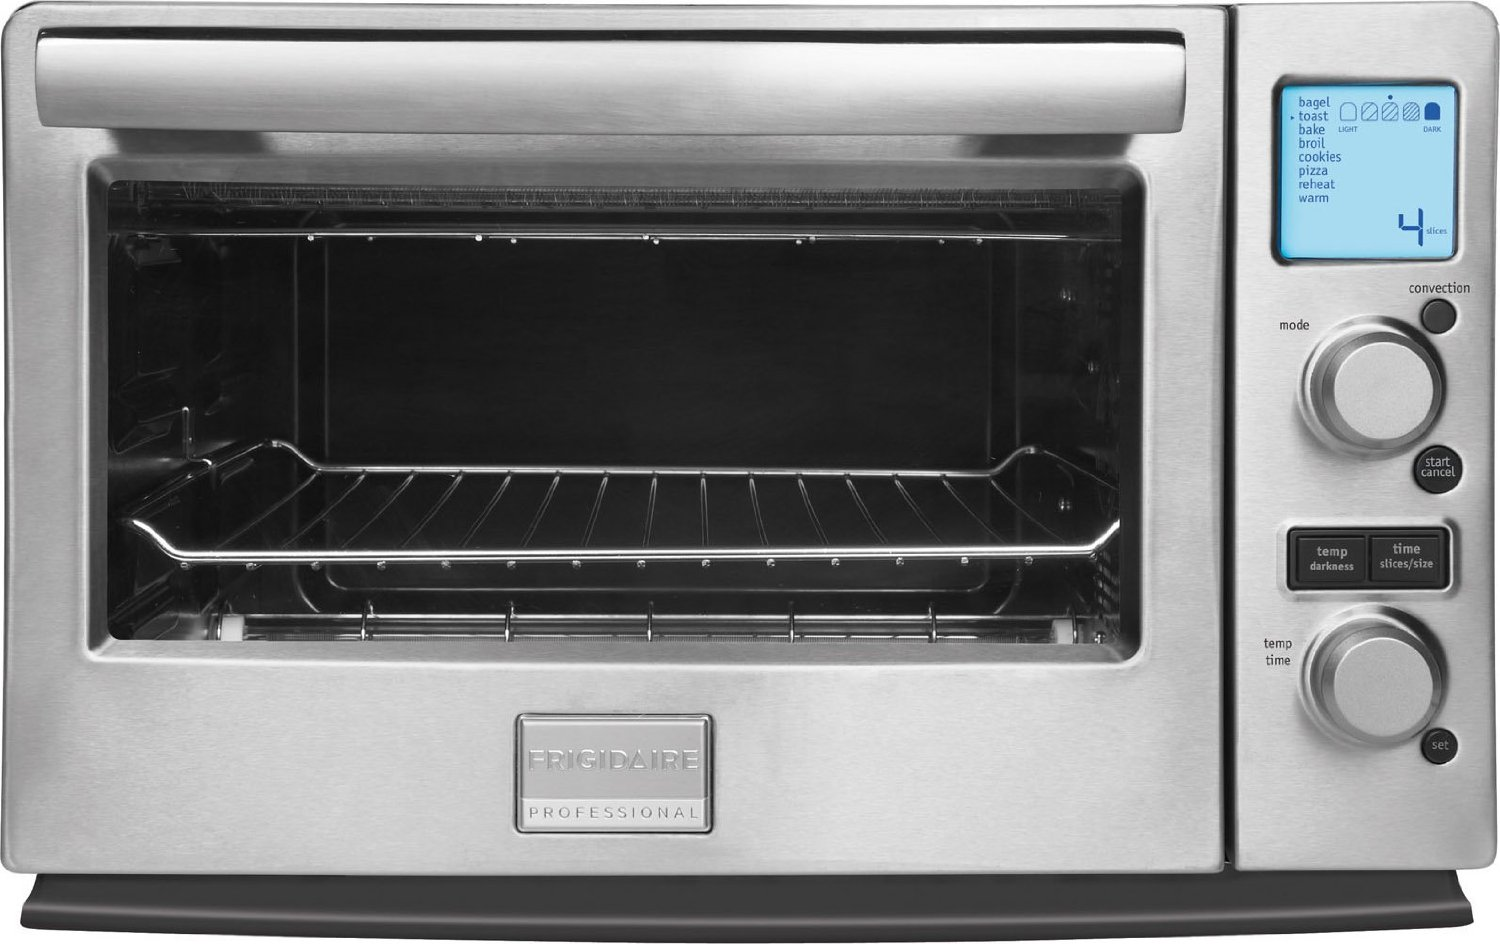 ge convection toaster oven manual